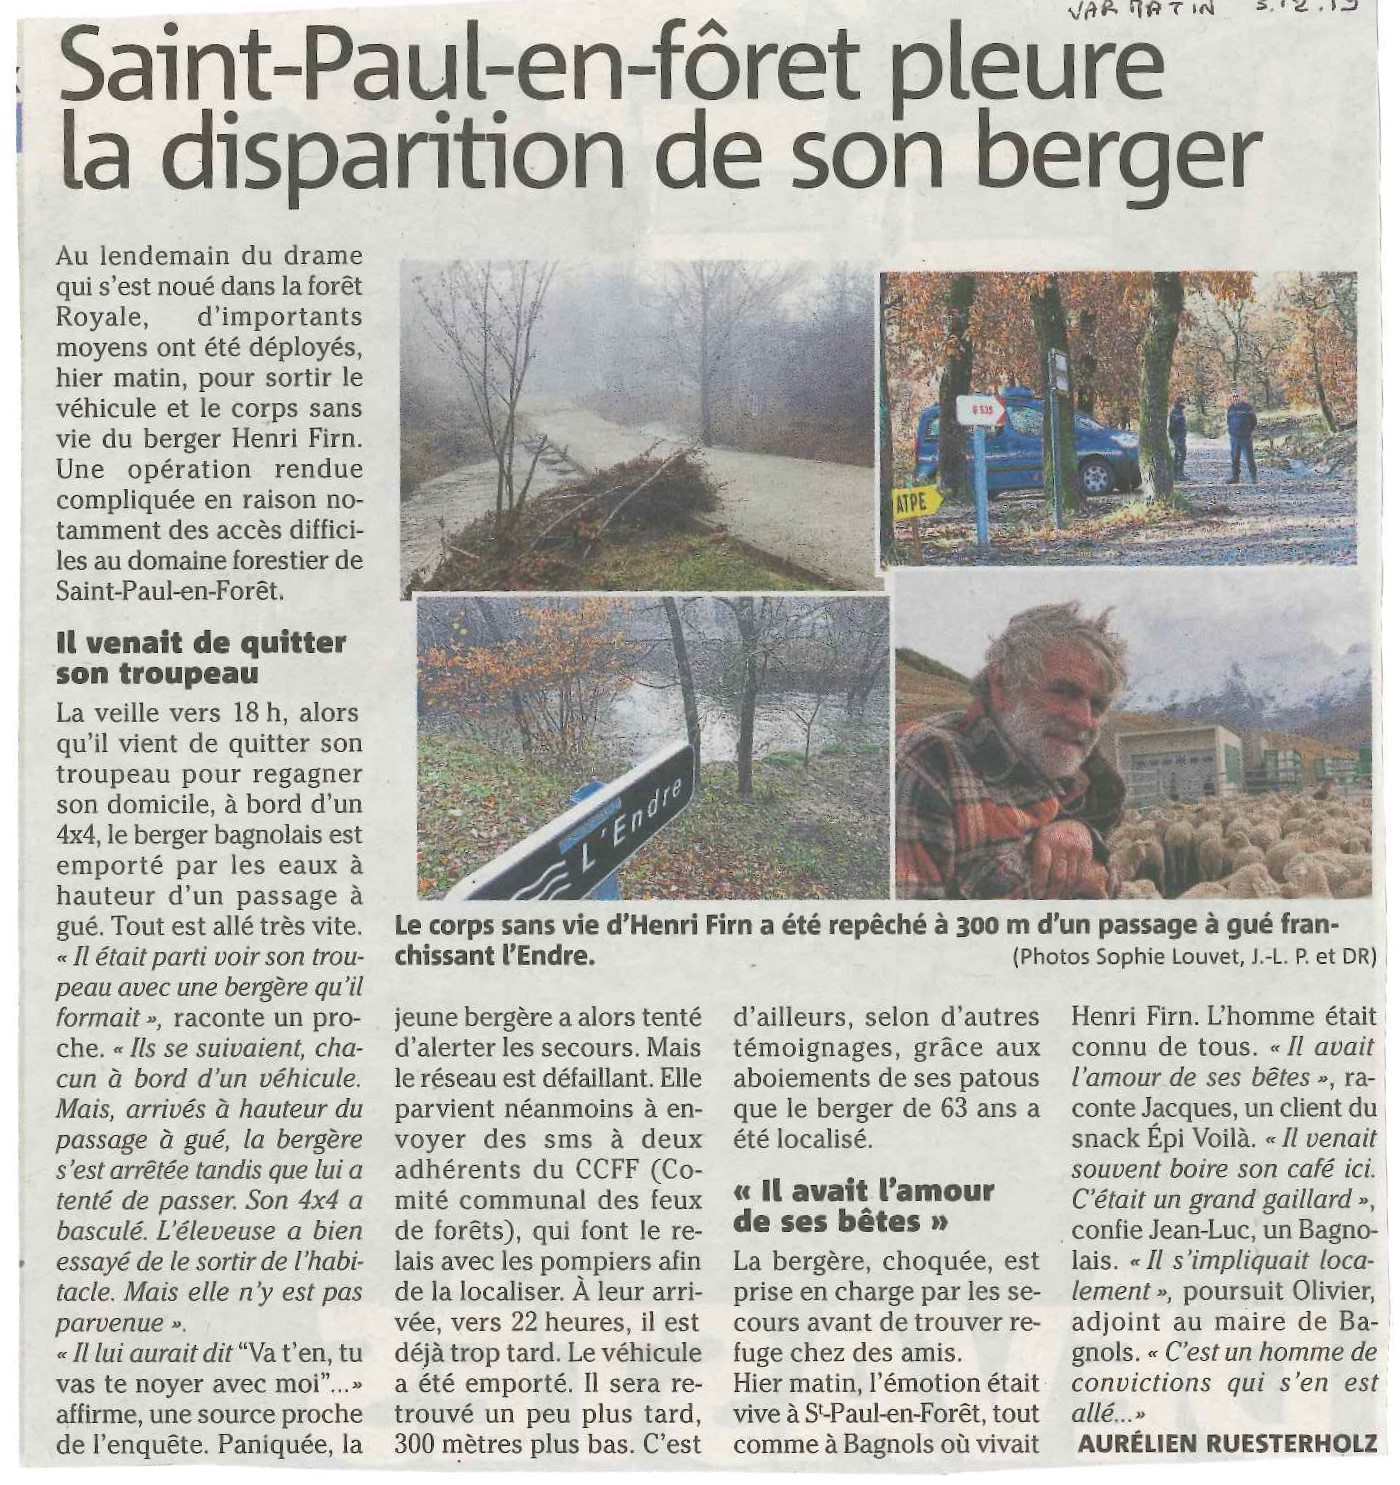 Disparition du Berger